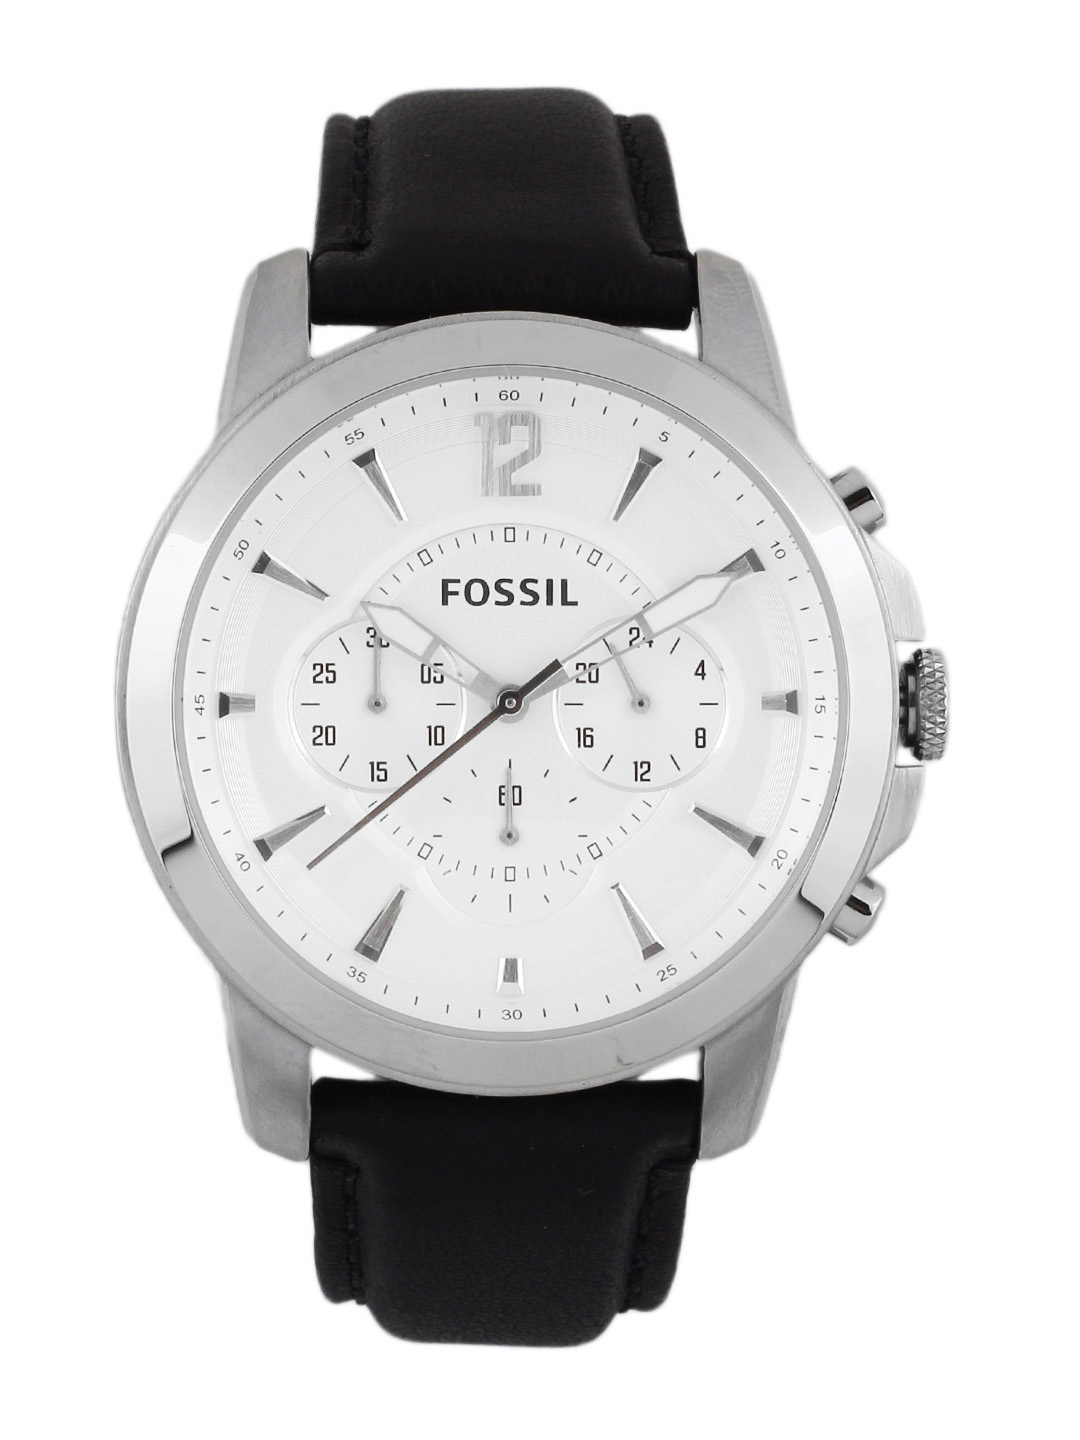 Fossil Men White Dial Analog Chronograph Watch